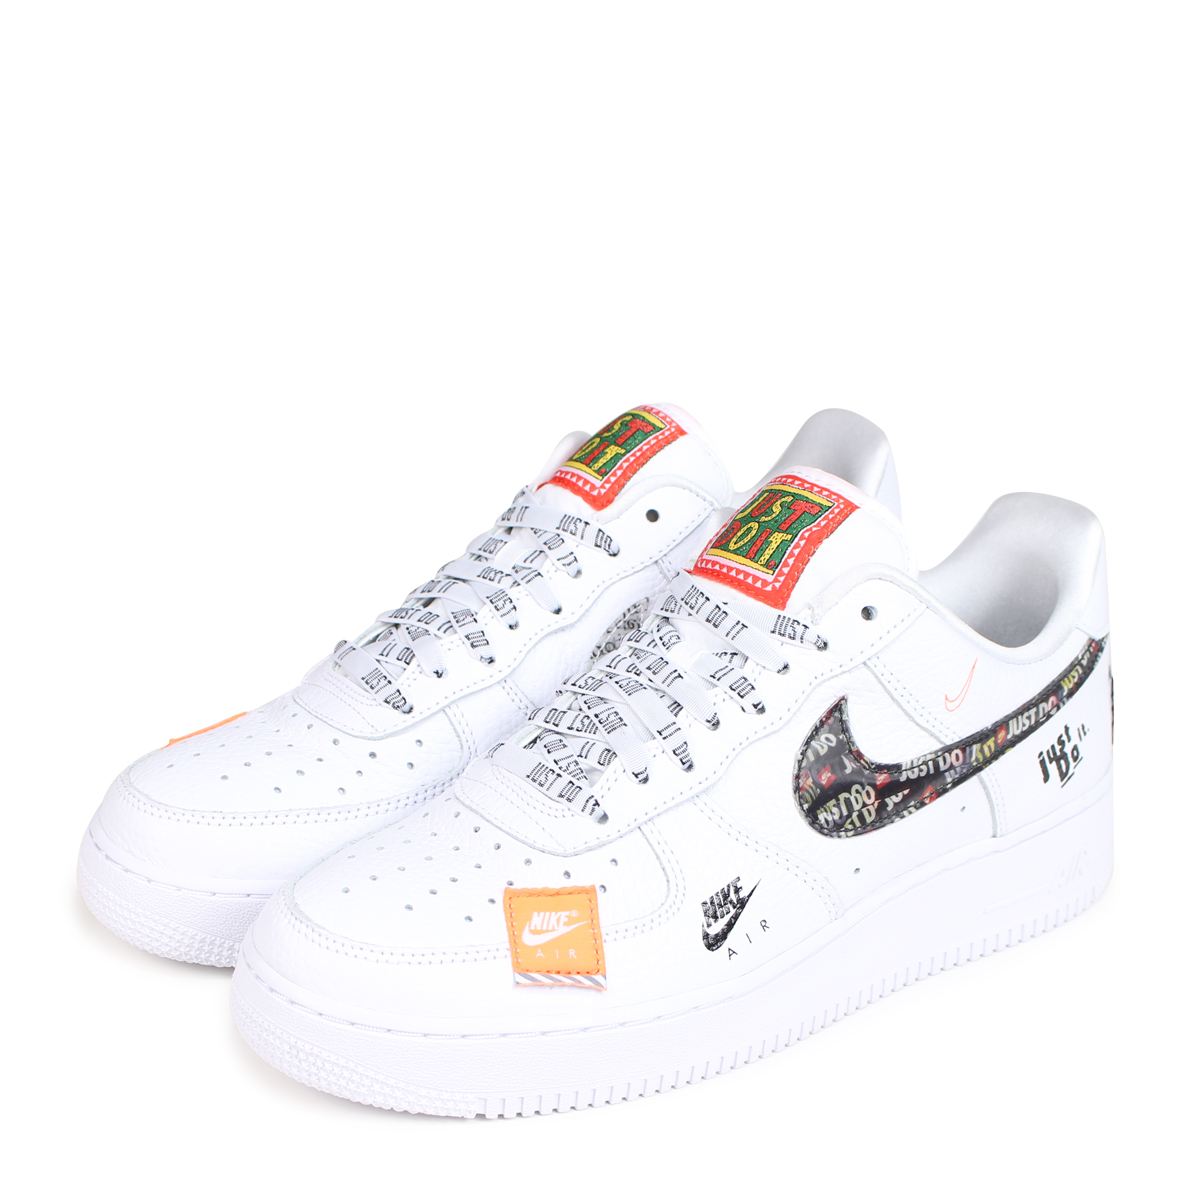 Nike Do Nike Air Force 1 07 Premium Just Do It Nike Air Force 1 Sneakers Men Ar7719 100 White Load Planned Shinnyu Load In Reservation Product 7 27